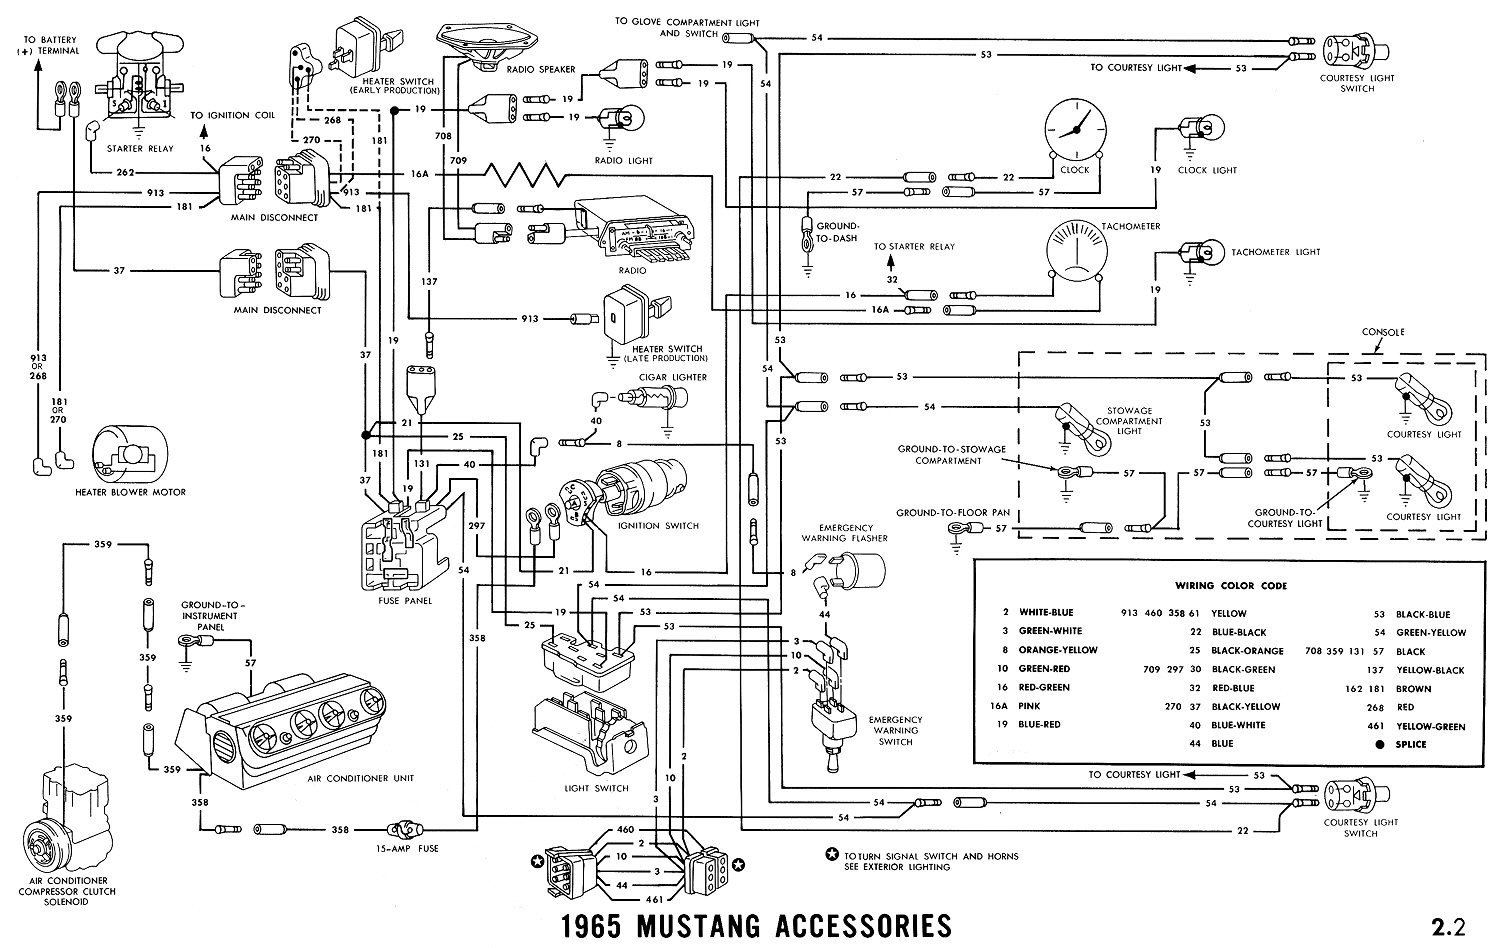 1965i 1965 mustang wiring diagrams average joe restoration 65 mustang ignition wiring diagram at mifinder.co